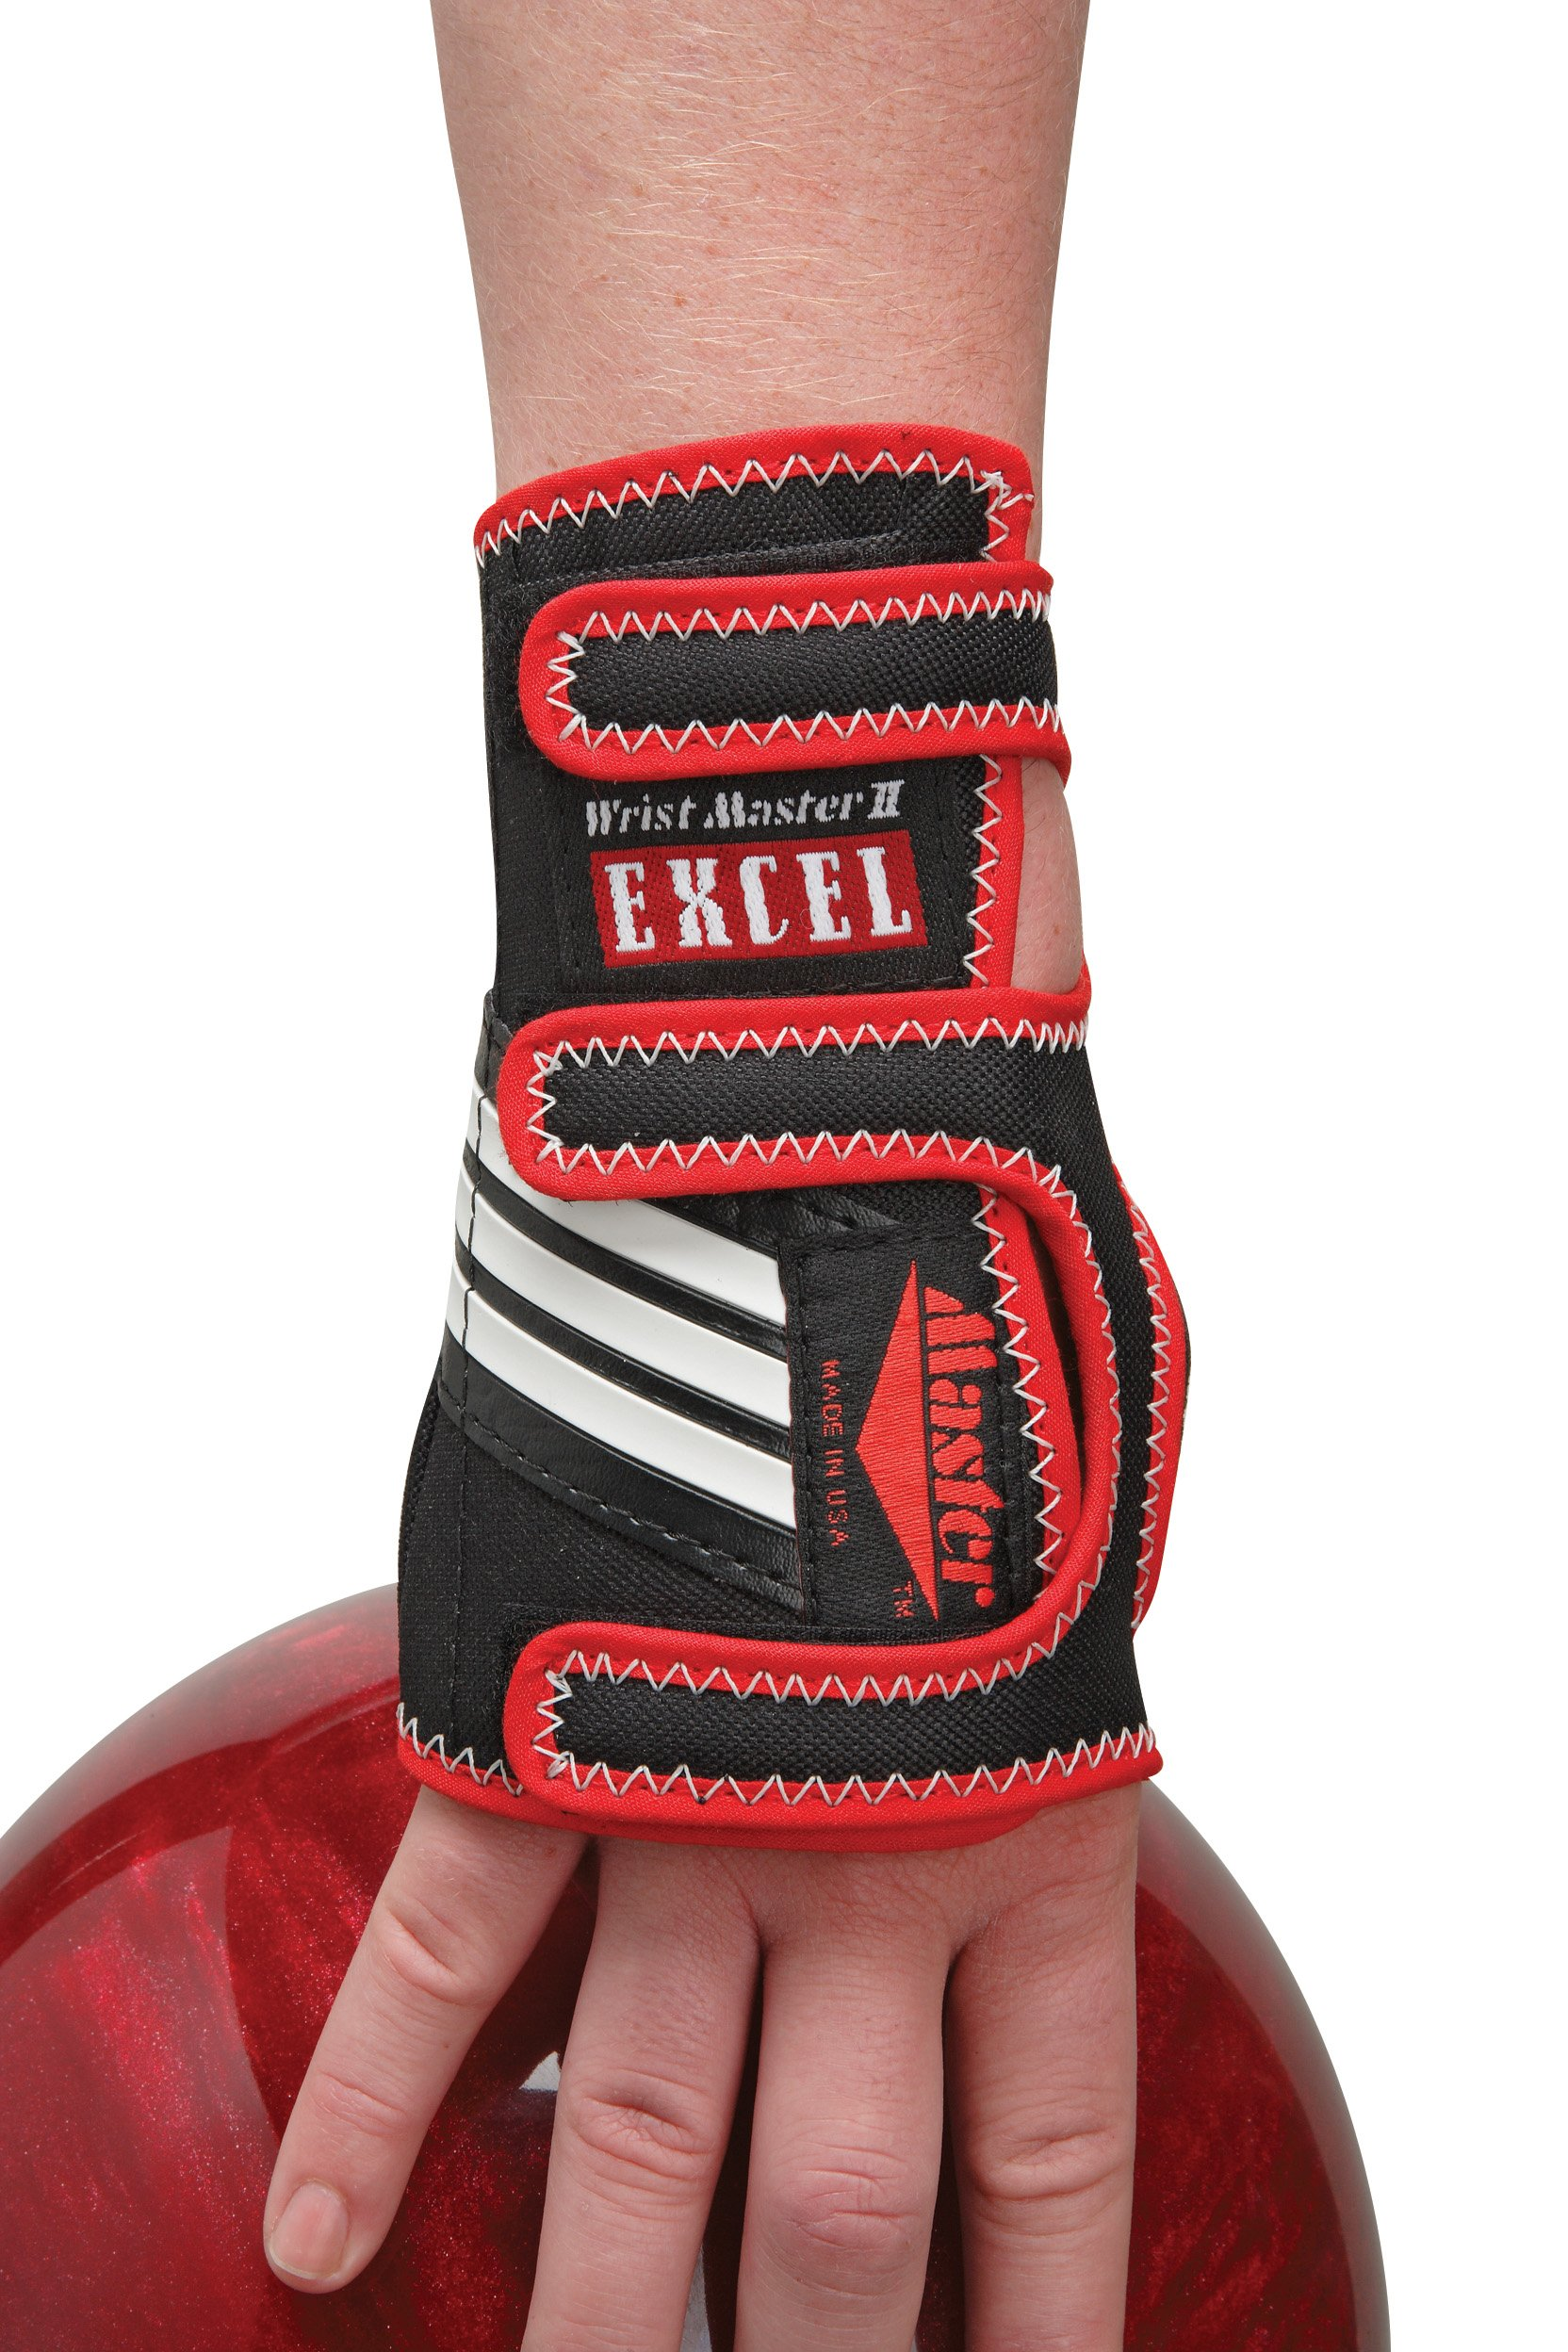 Master Industries Wrist Master II Excel Bowling Gloves, Small, Right Hand